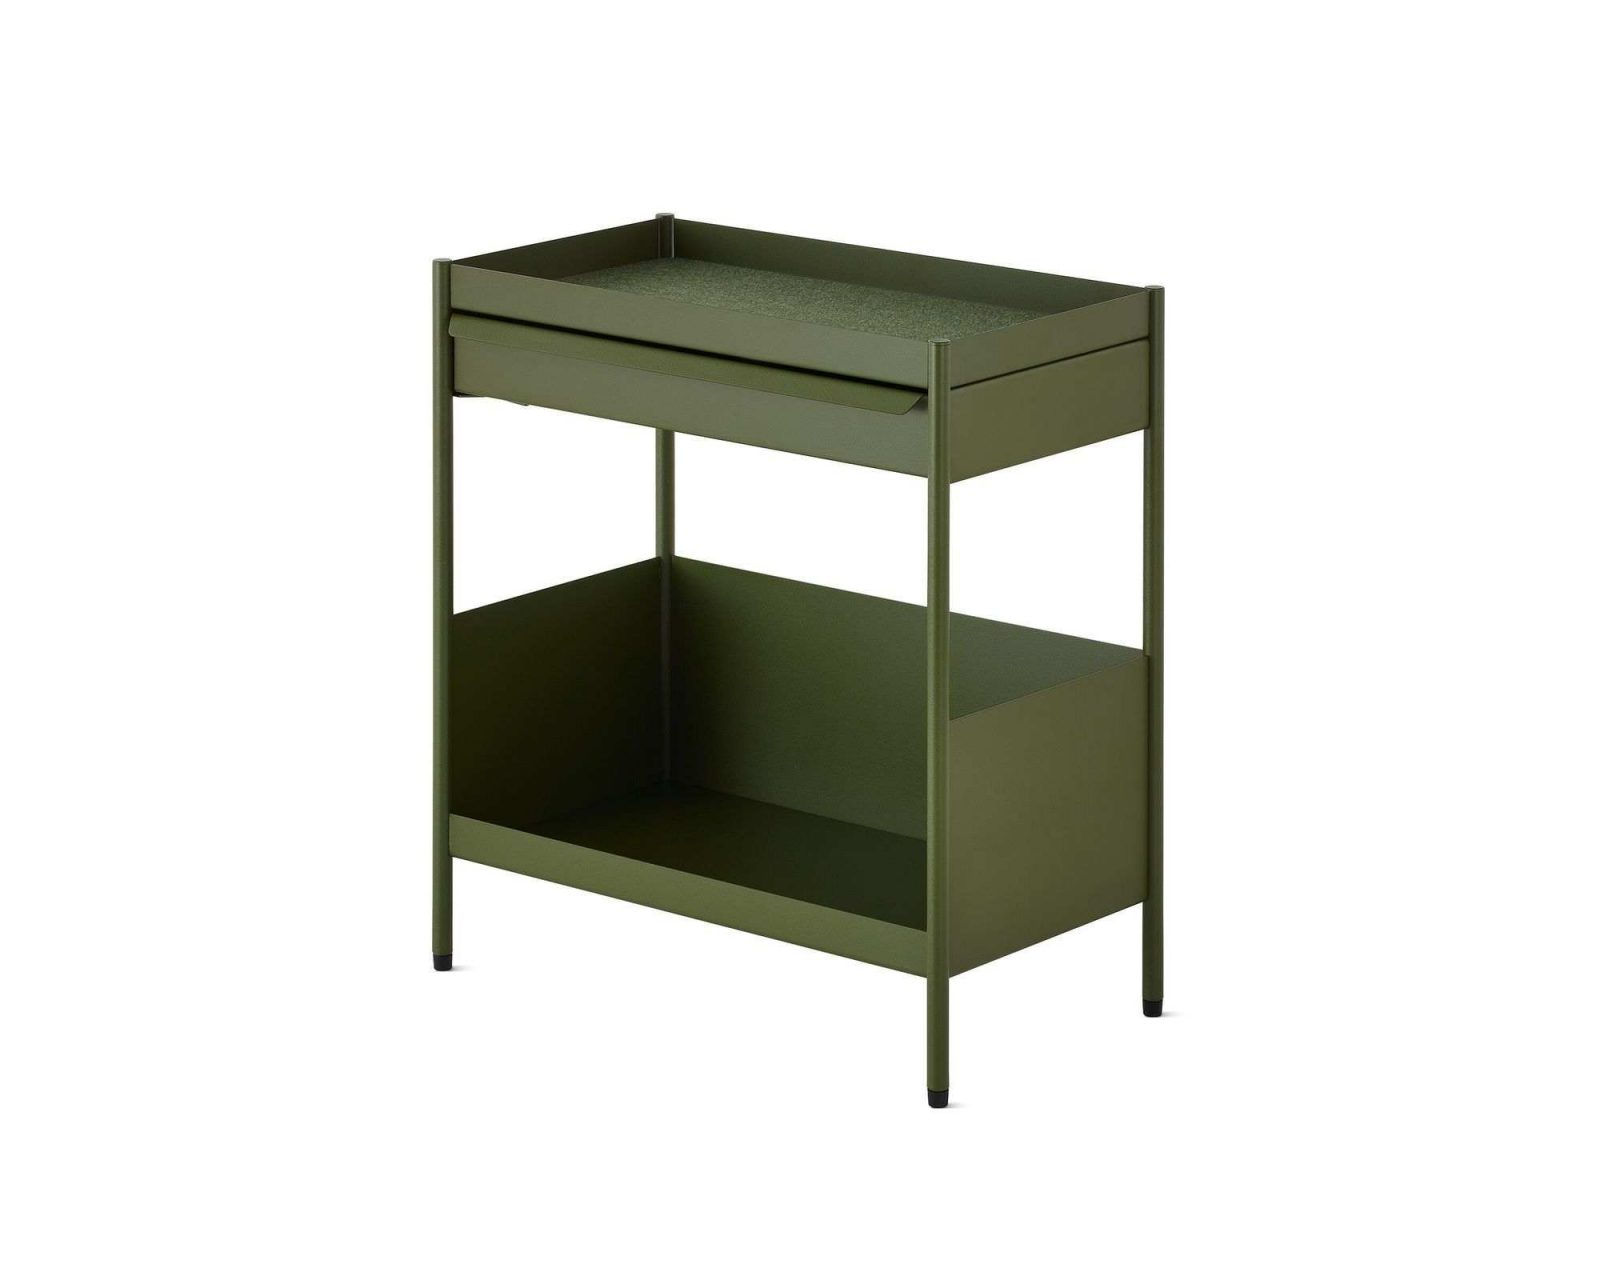 Ocean bound plastic products oe1 storage trolley